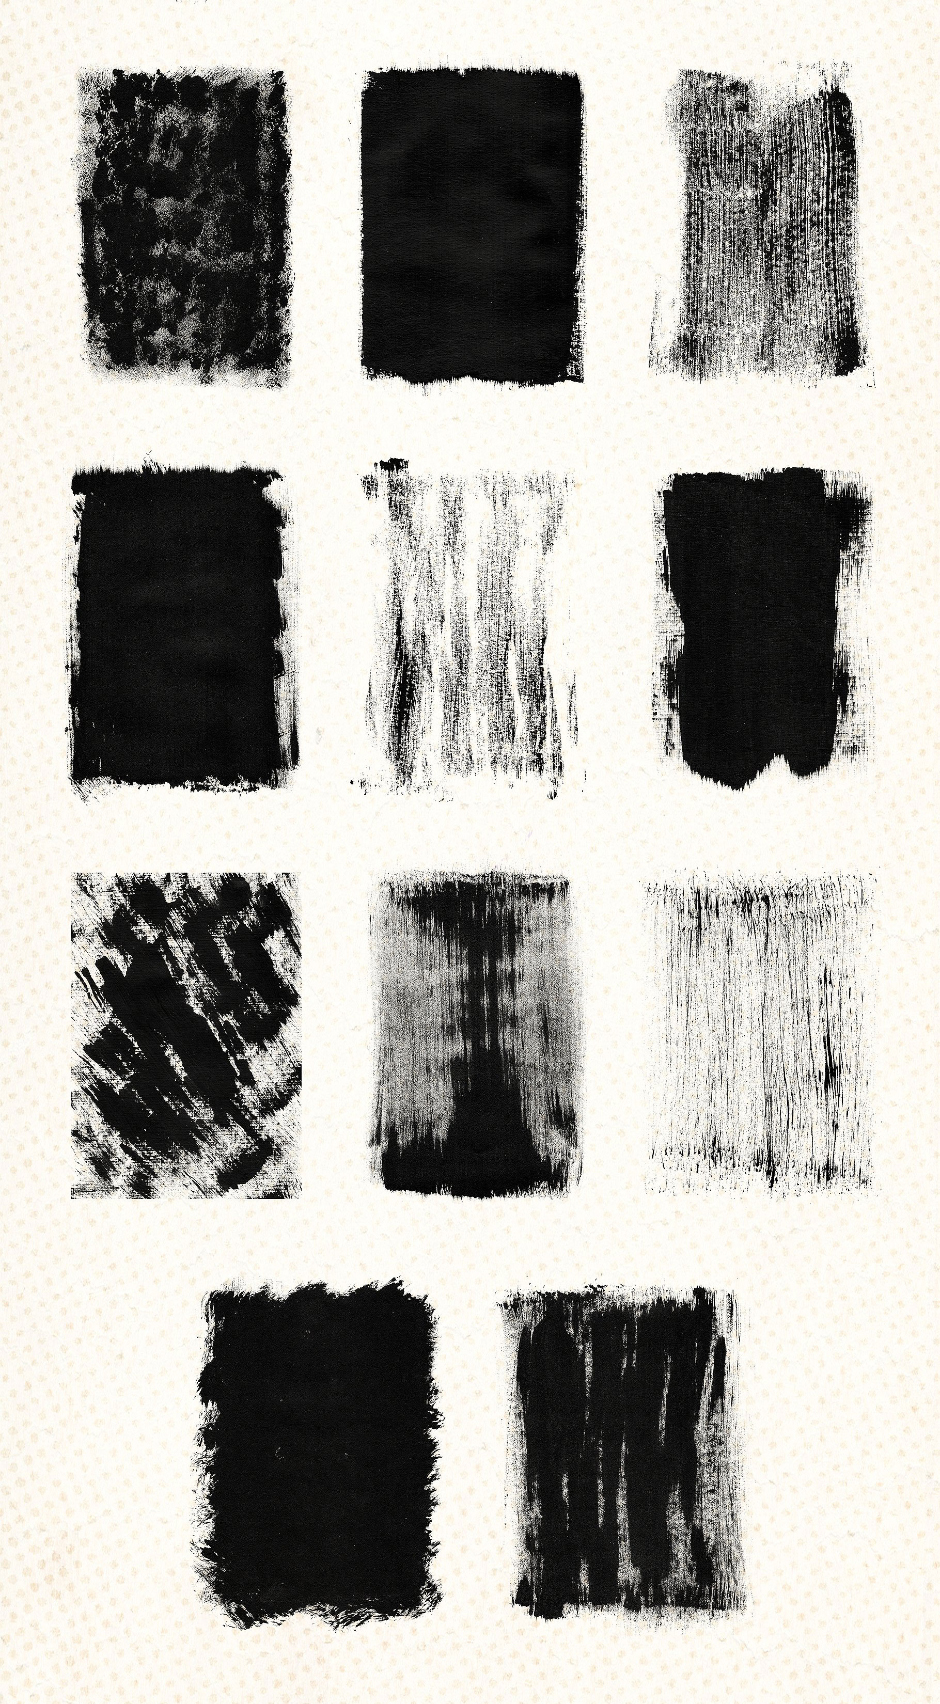 Blackview Grunge Textures Collection